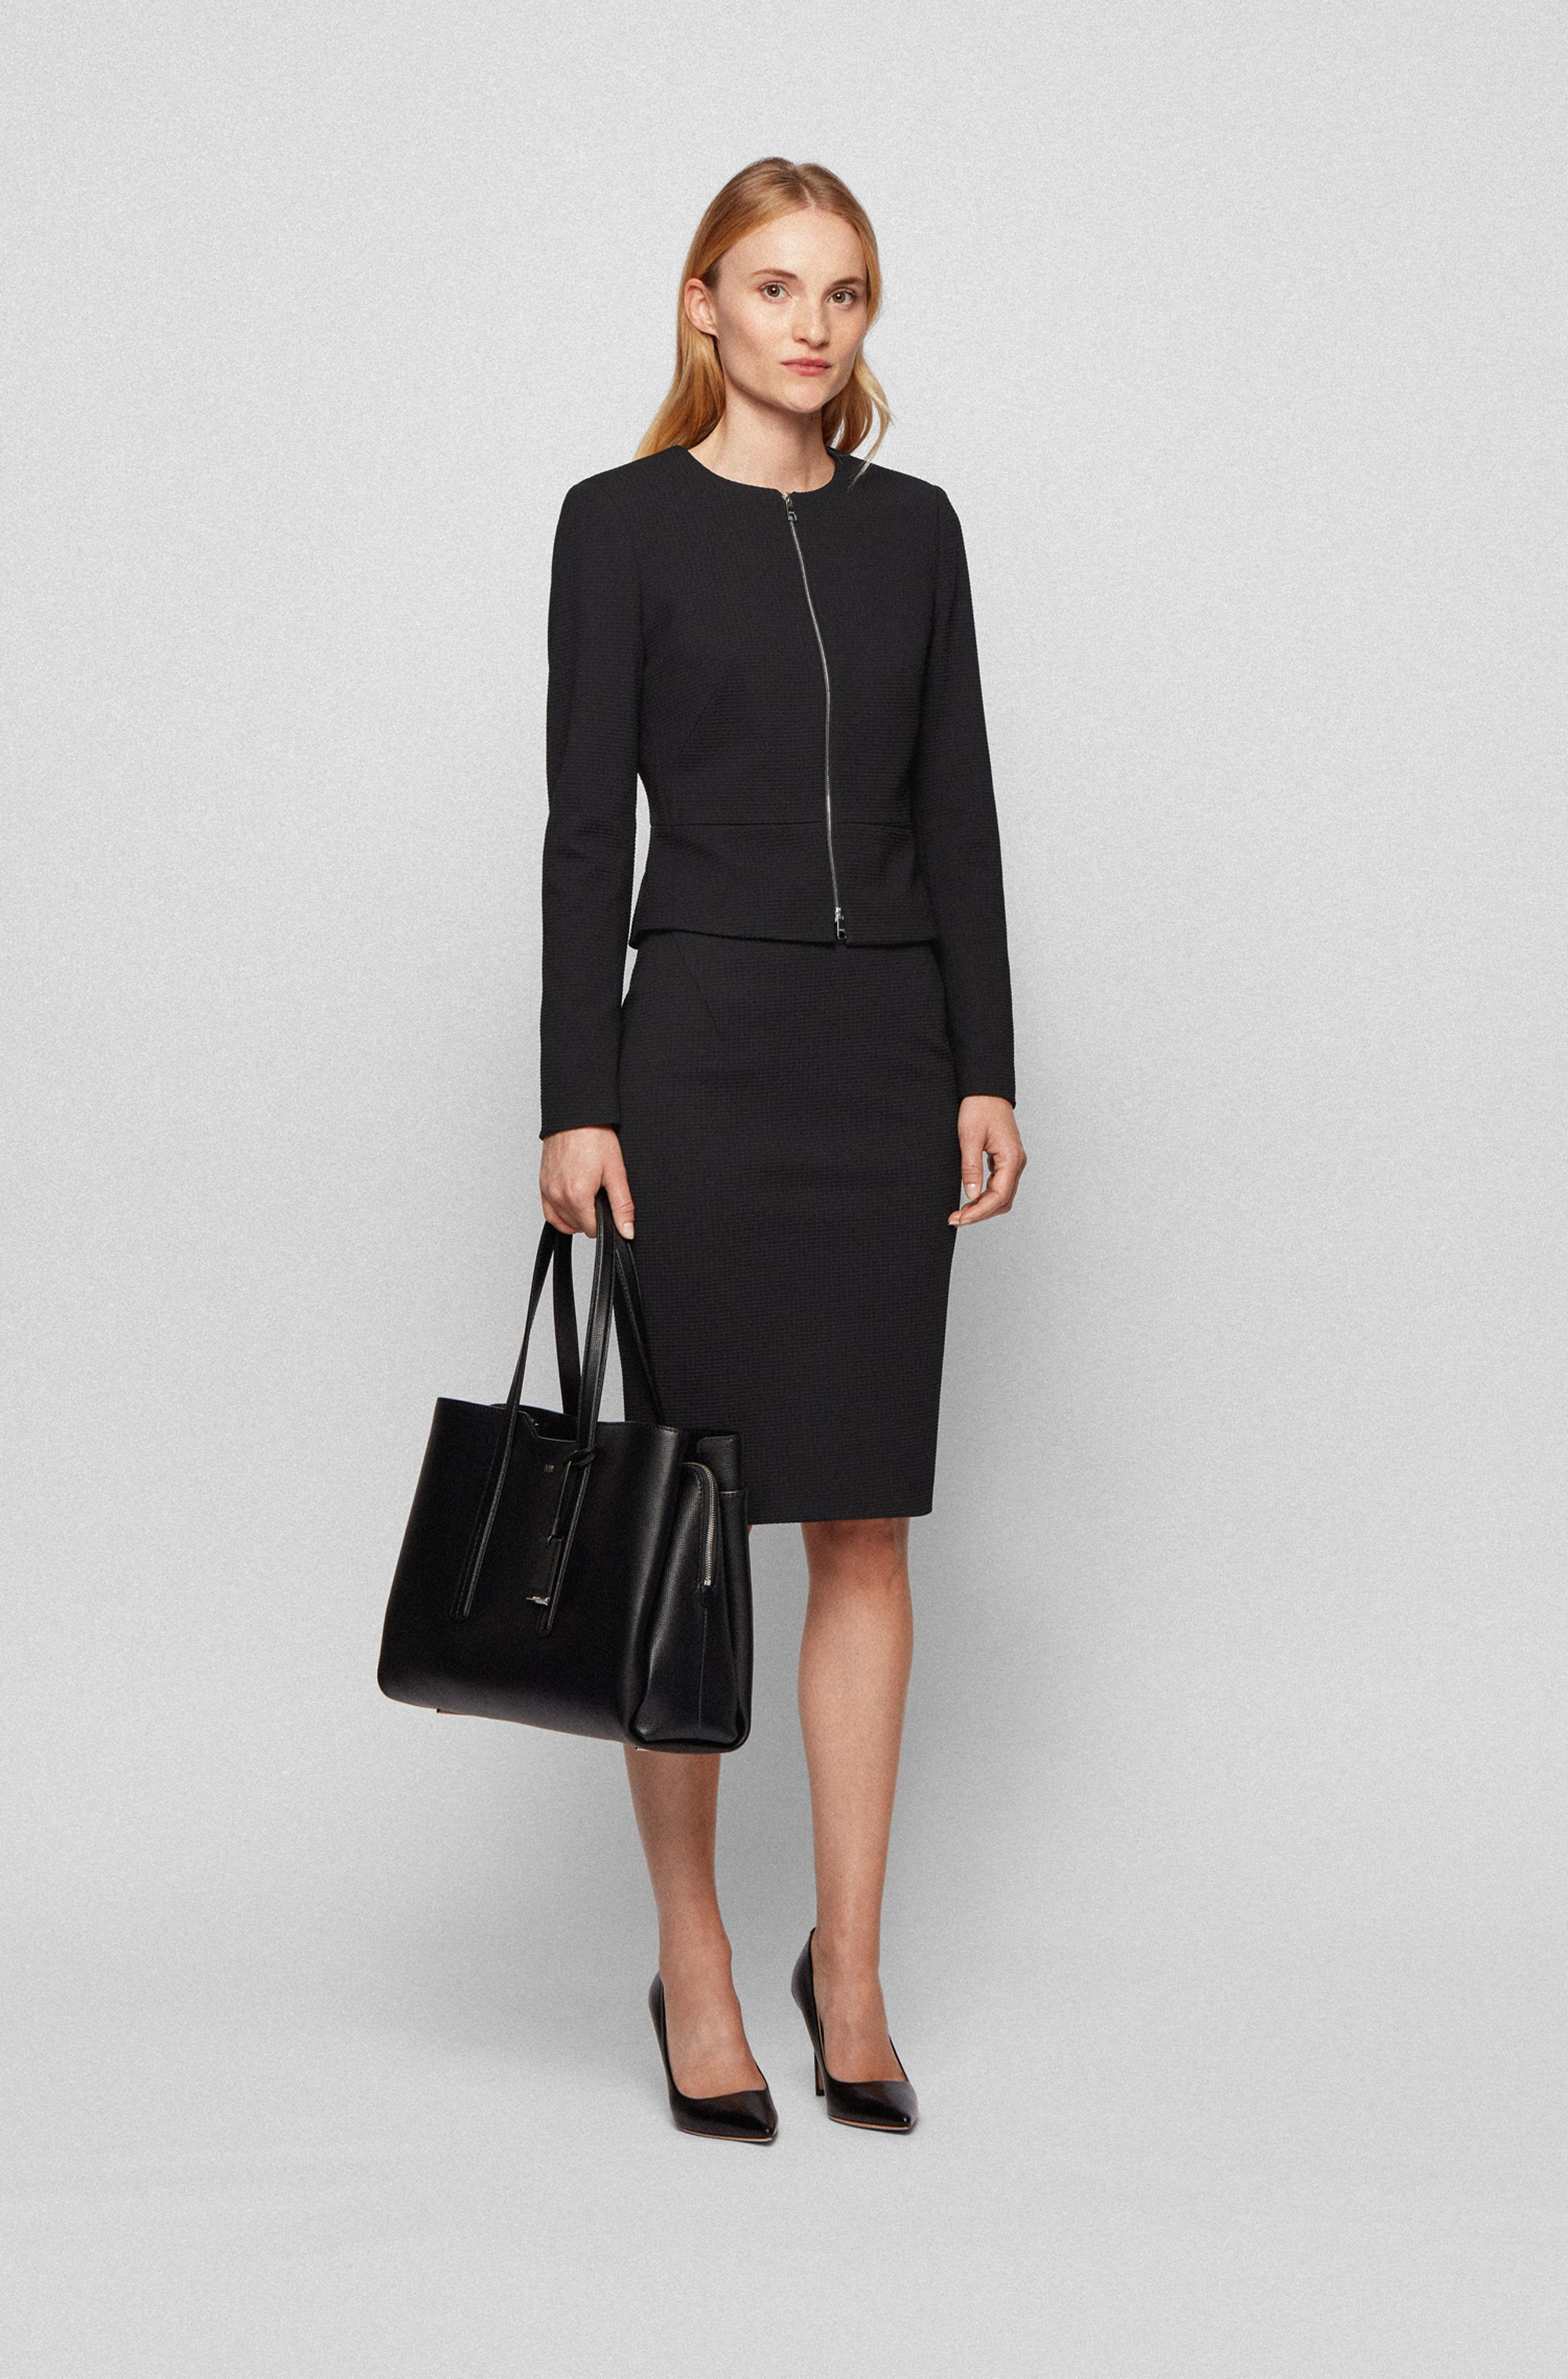 Houndstooth-jersey pencil skirt with exposed-zip detail